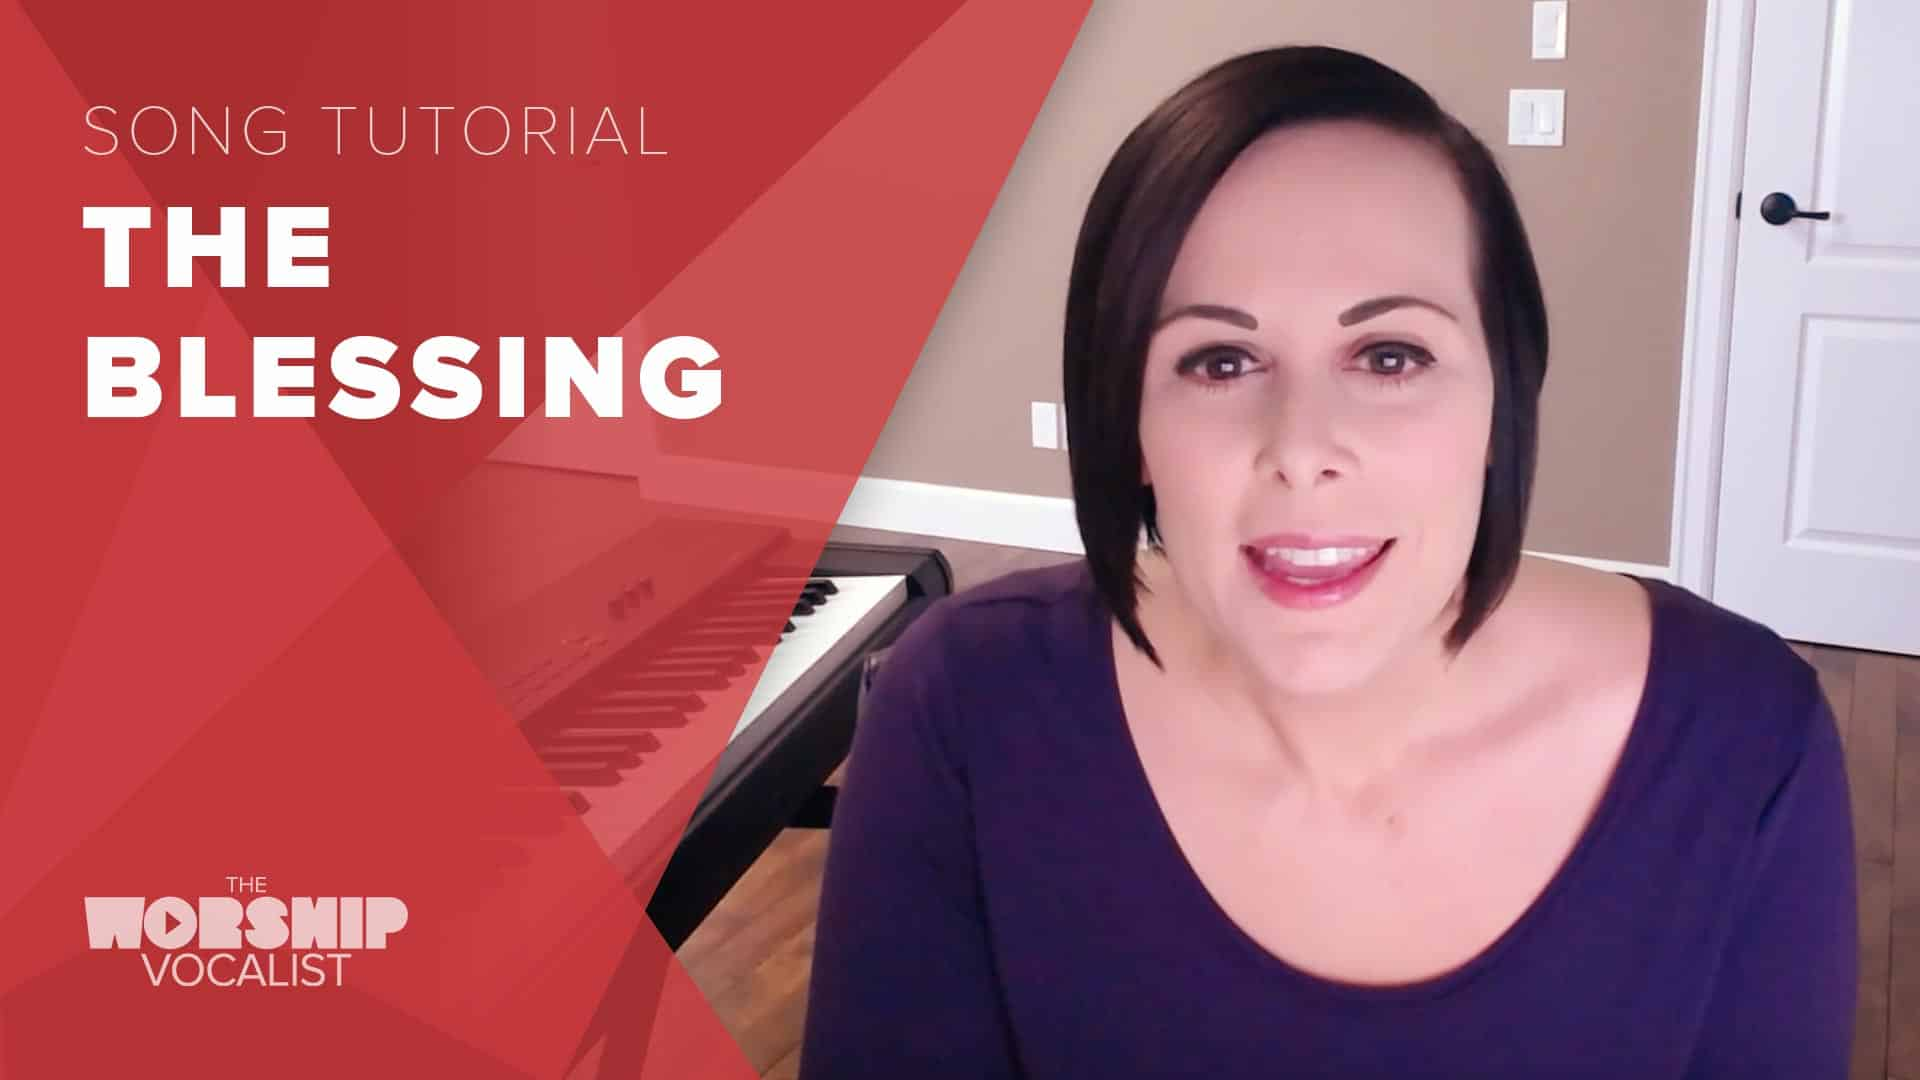 How to sing The Blessing like Elevation Worship, Kari Jobe and Cody Karnes